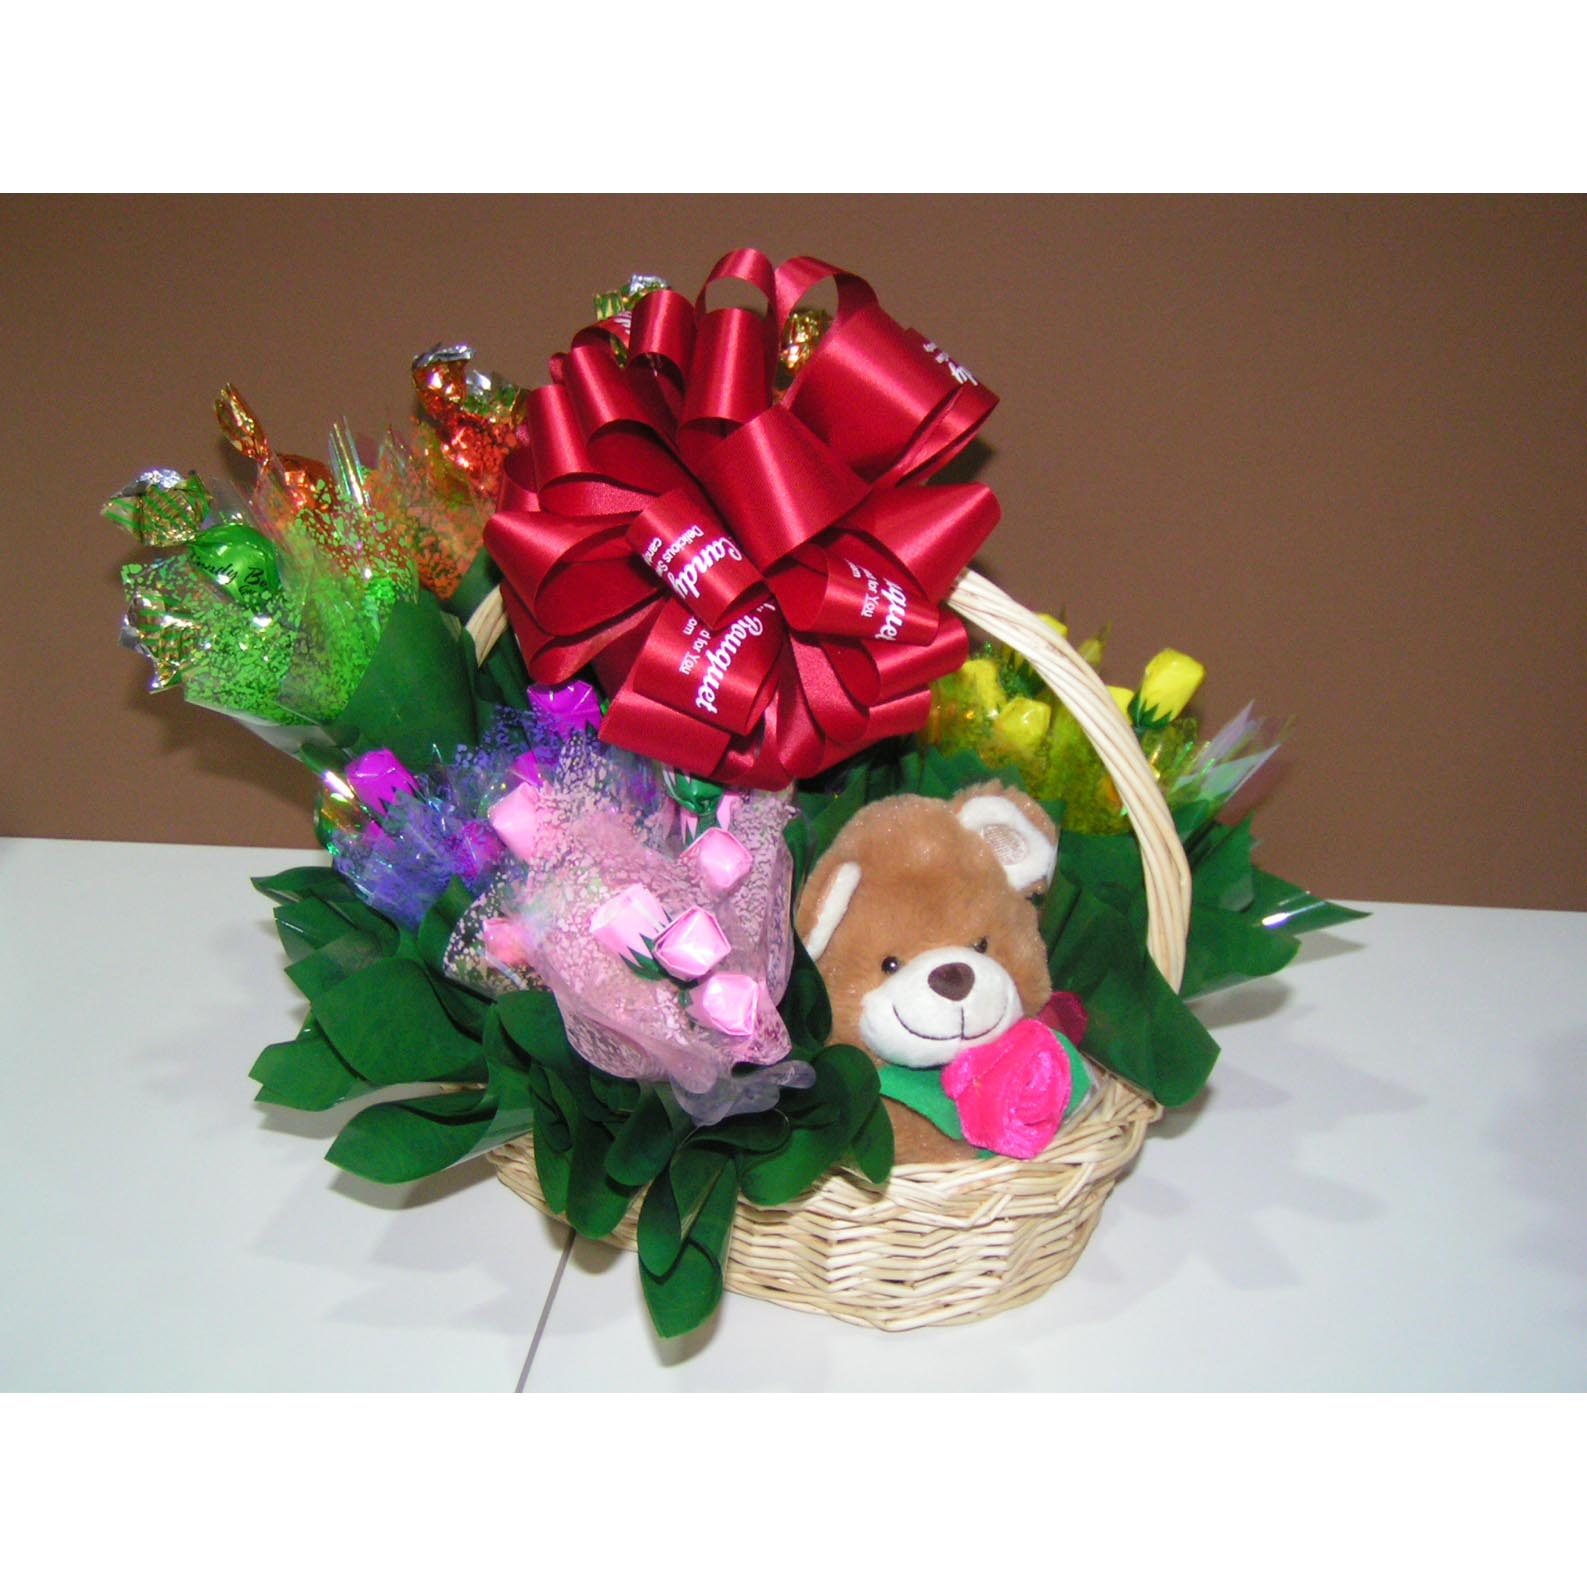 Send get well soon gifts to kolkatasend get well soon gifts to kggetwel005 small teddy 10pcs red rose 10 pcs yellow rose 10pcs pink rose basket dhlflorist Images